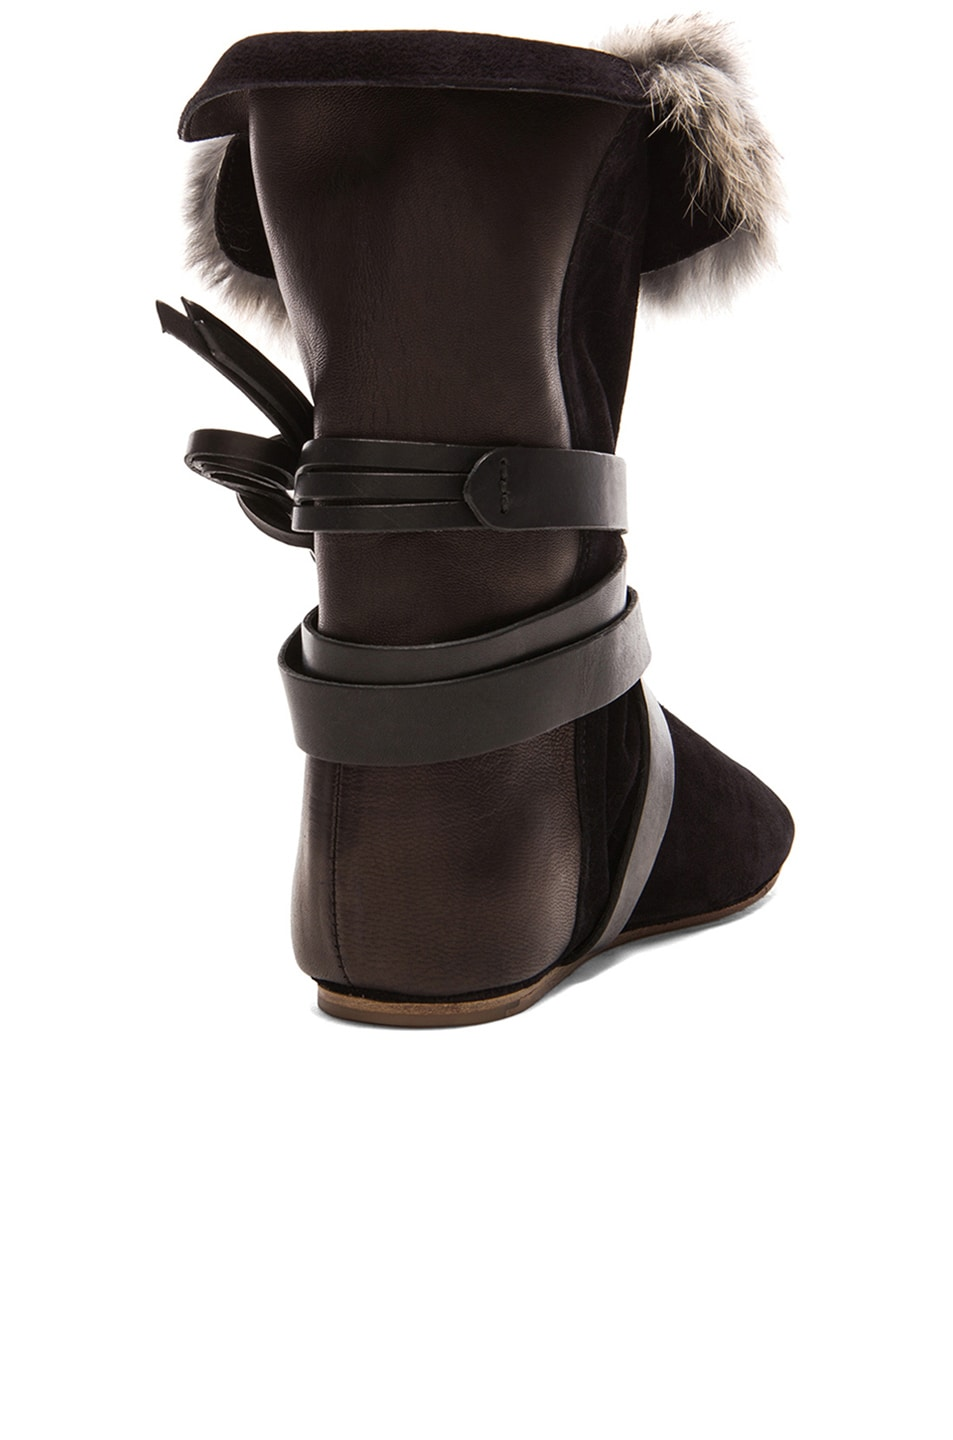 Image 3 of Isabel Marant Nia Couture Calfskin Velvet Leather Boots with Fur in Black